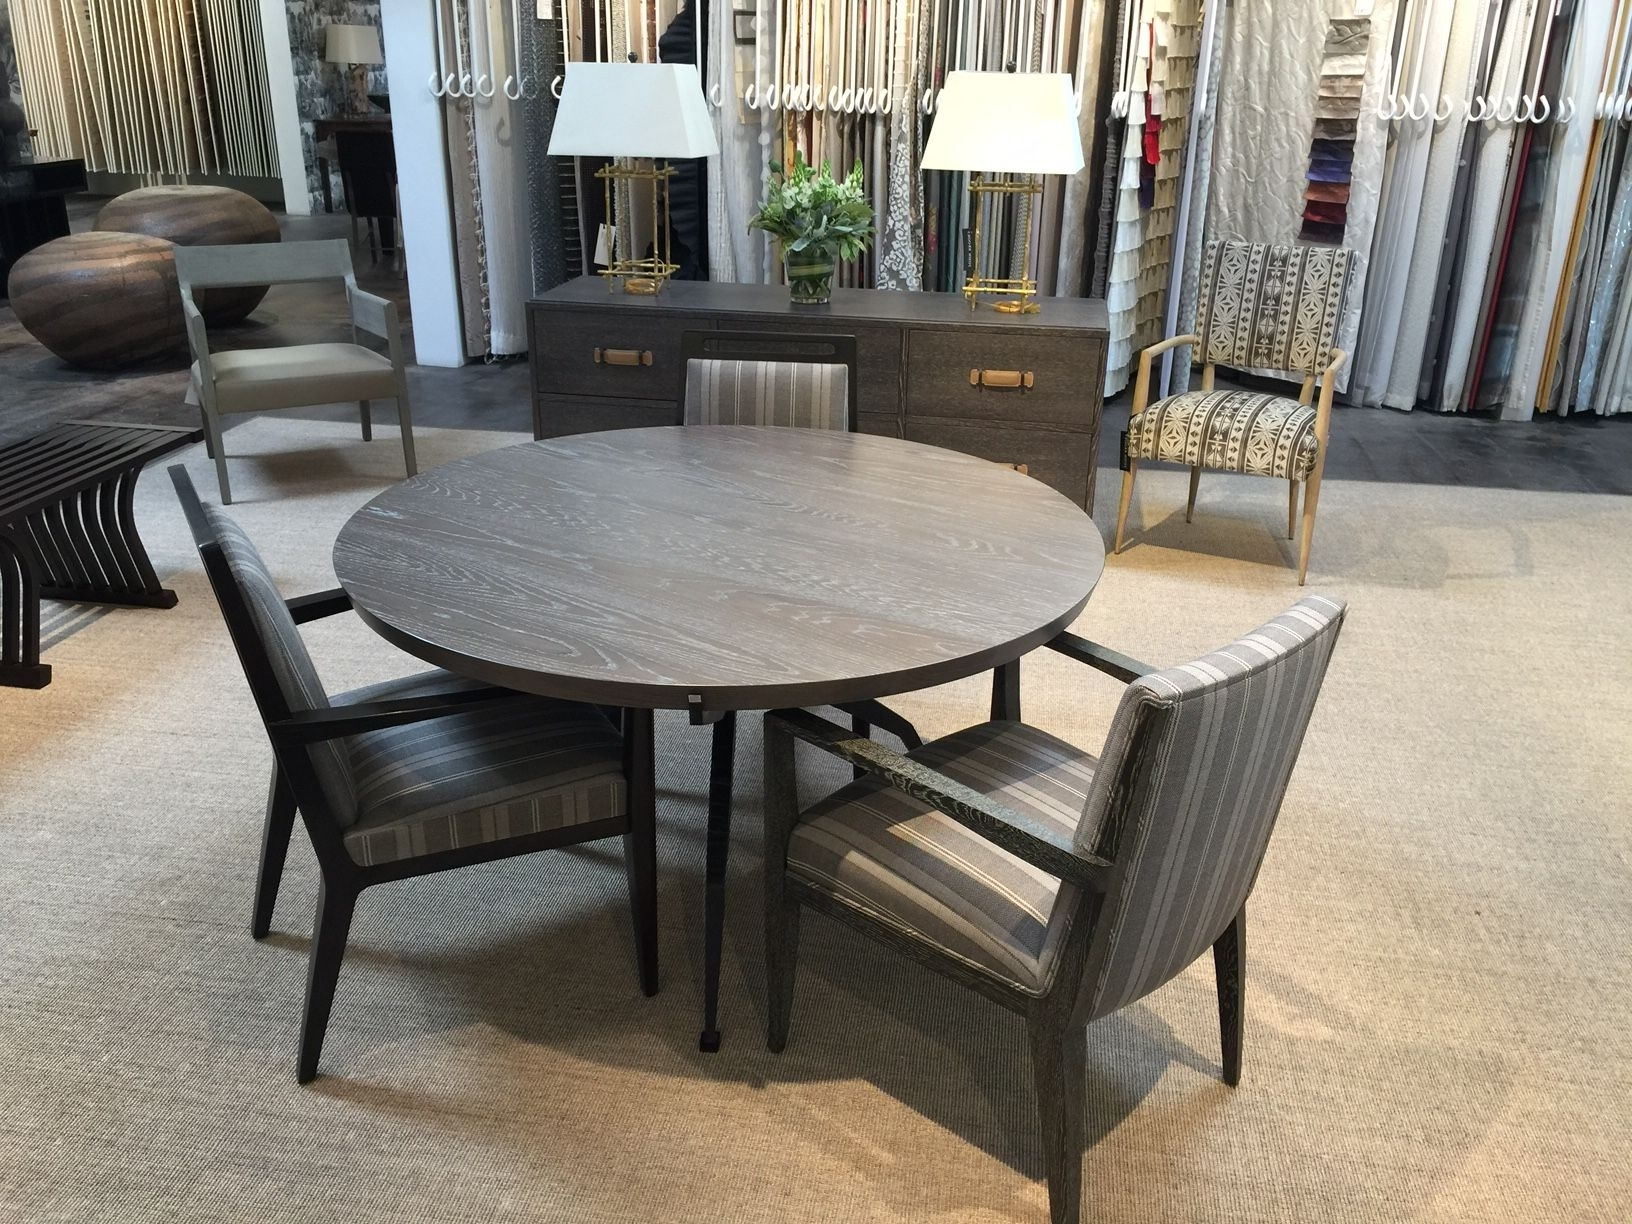 Popular John Brooks – Scottsdale Showroom: Mattaliano Gallery Showcasing Pertaining To Market 6 Piece Dining Sets With Side Chairs (View 9 of 25)